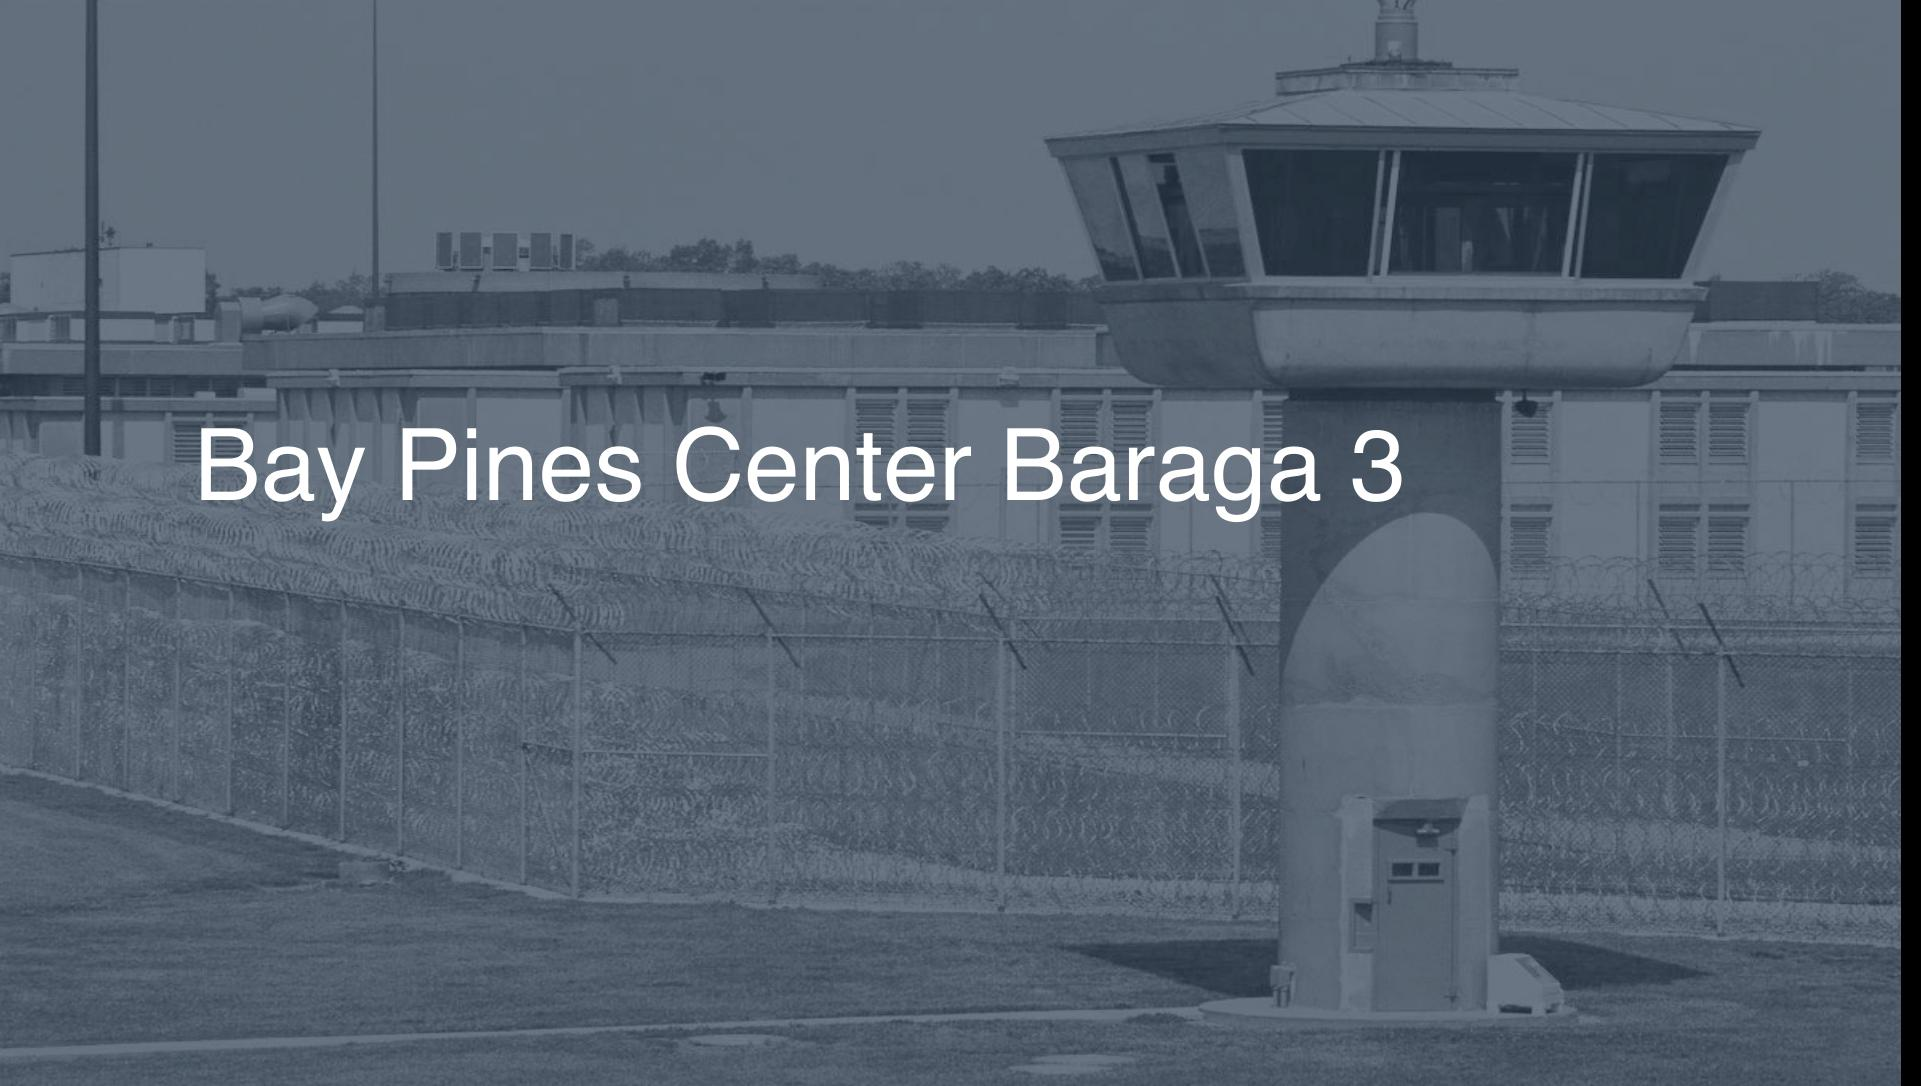 Bay Pines Center - Baraga correctional facility picture